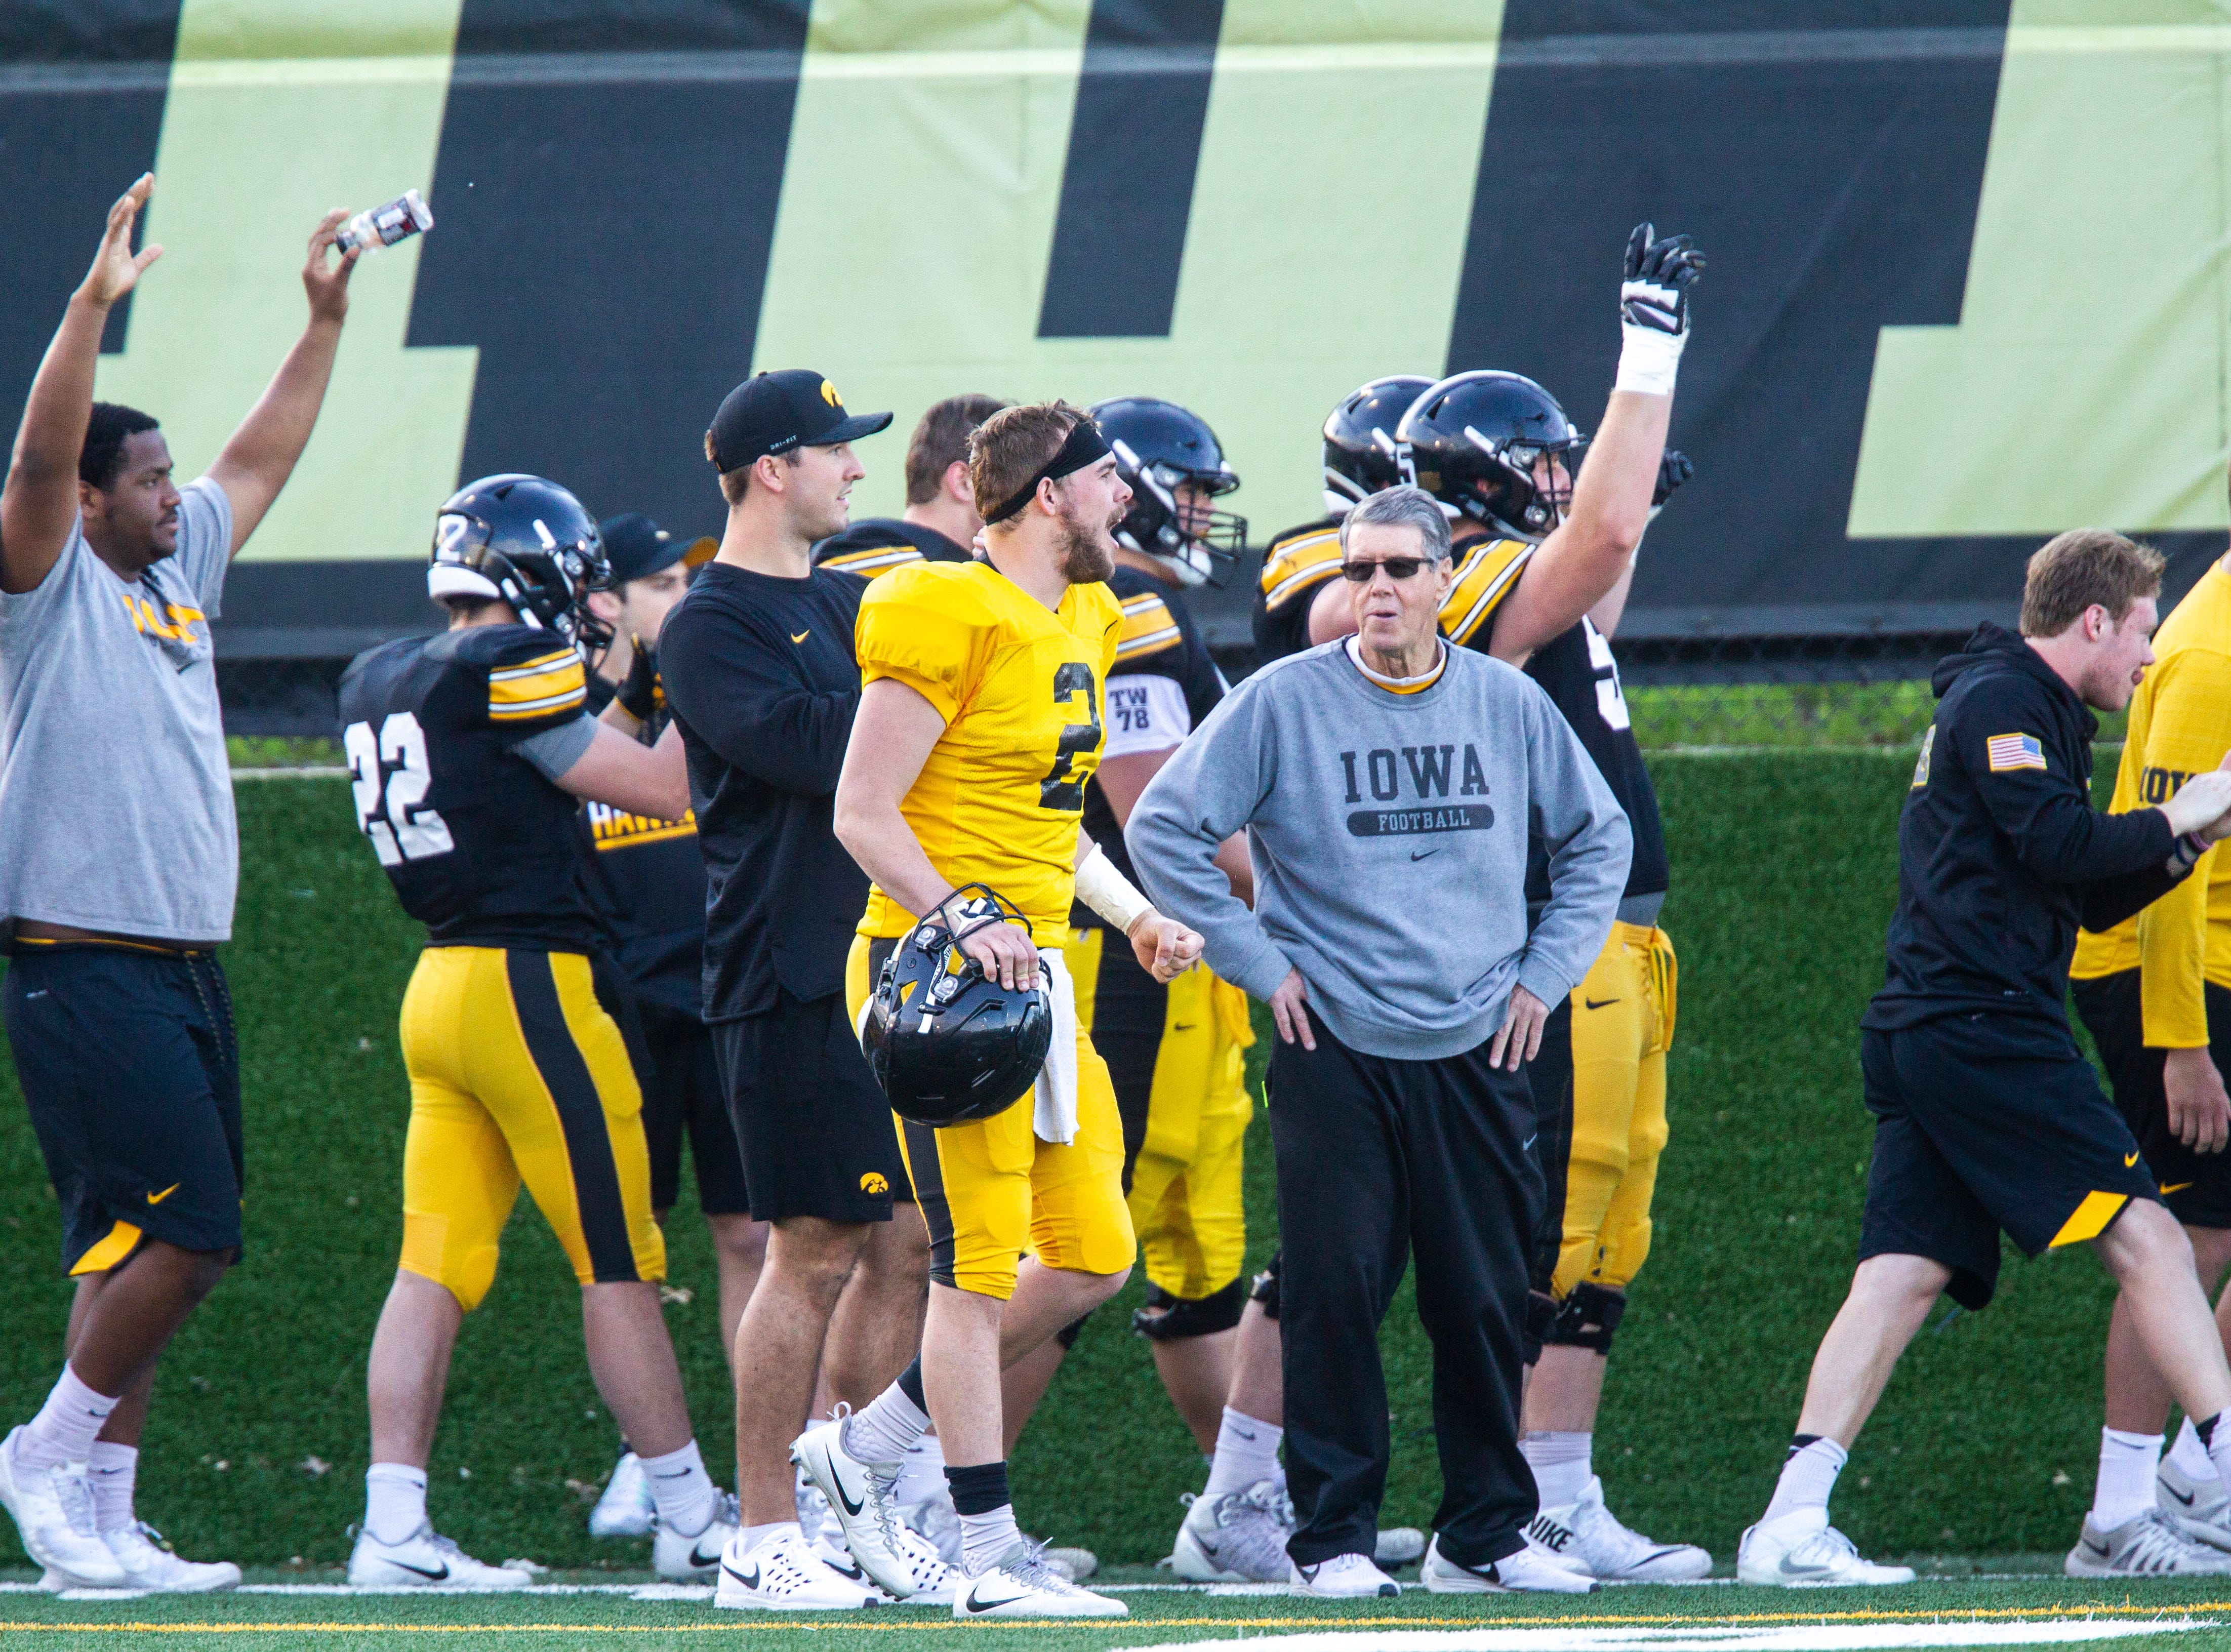 Iowa offensive players celebrate following a play during the final spring football practice, Friday, April 26, 2019, at the University of Iowa outdoor practice facility in Iowa City, Iowa.